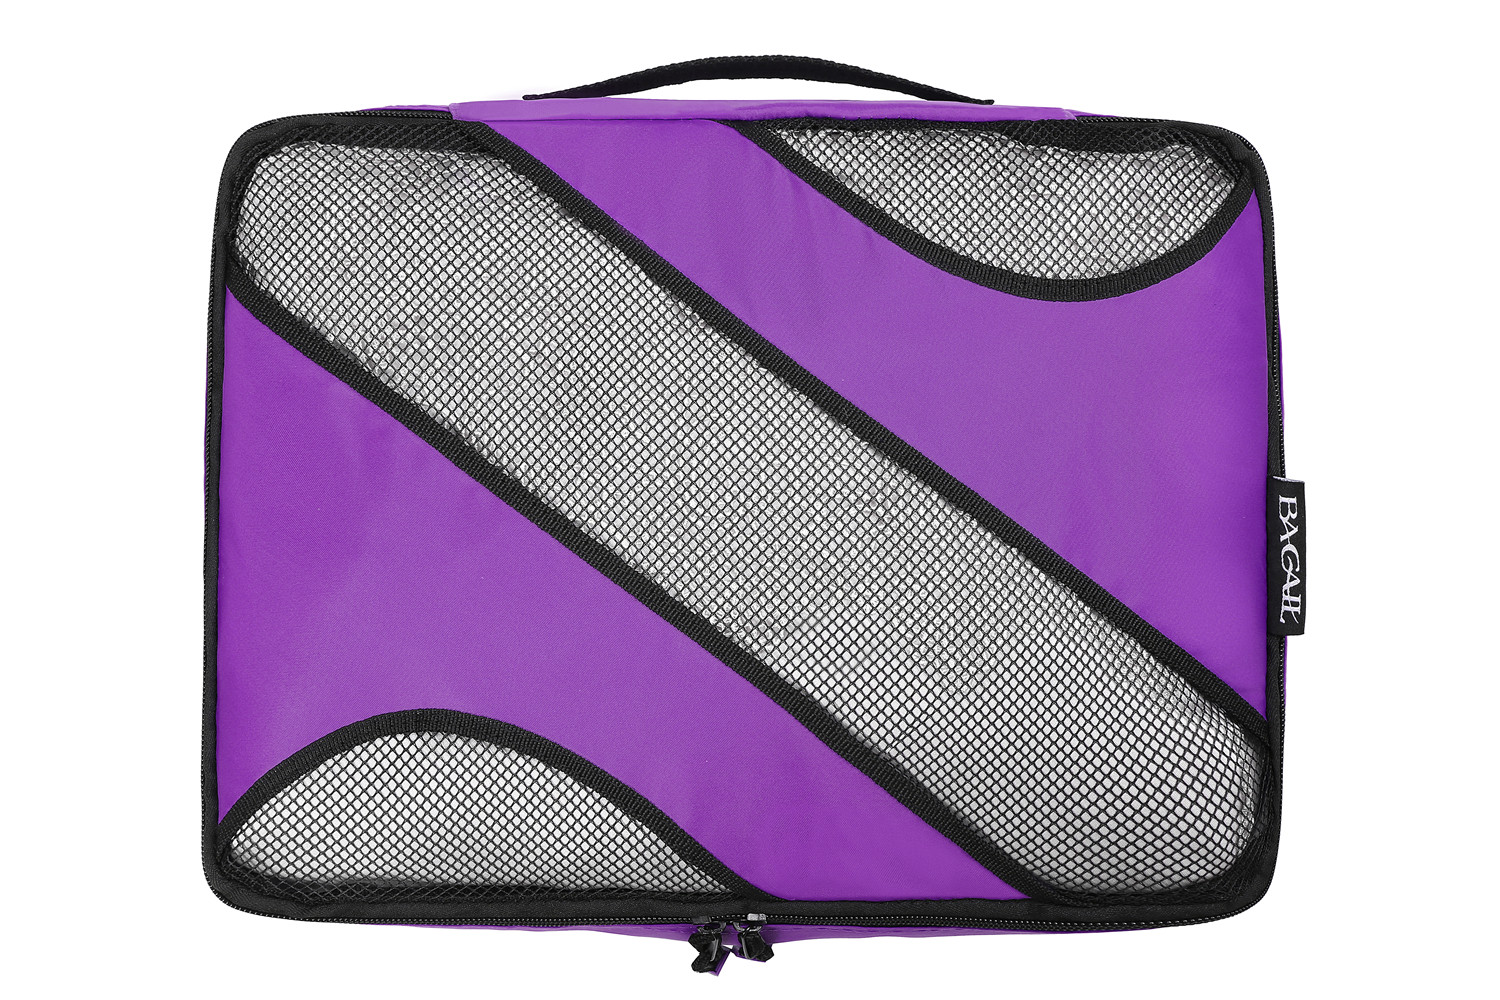 r Happy Purple Dragon 3 Set Packing Cubes,2 Various Sizes Travel Luggage Packing Organizers